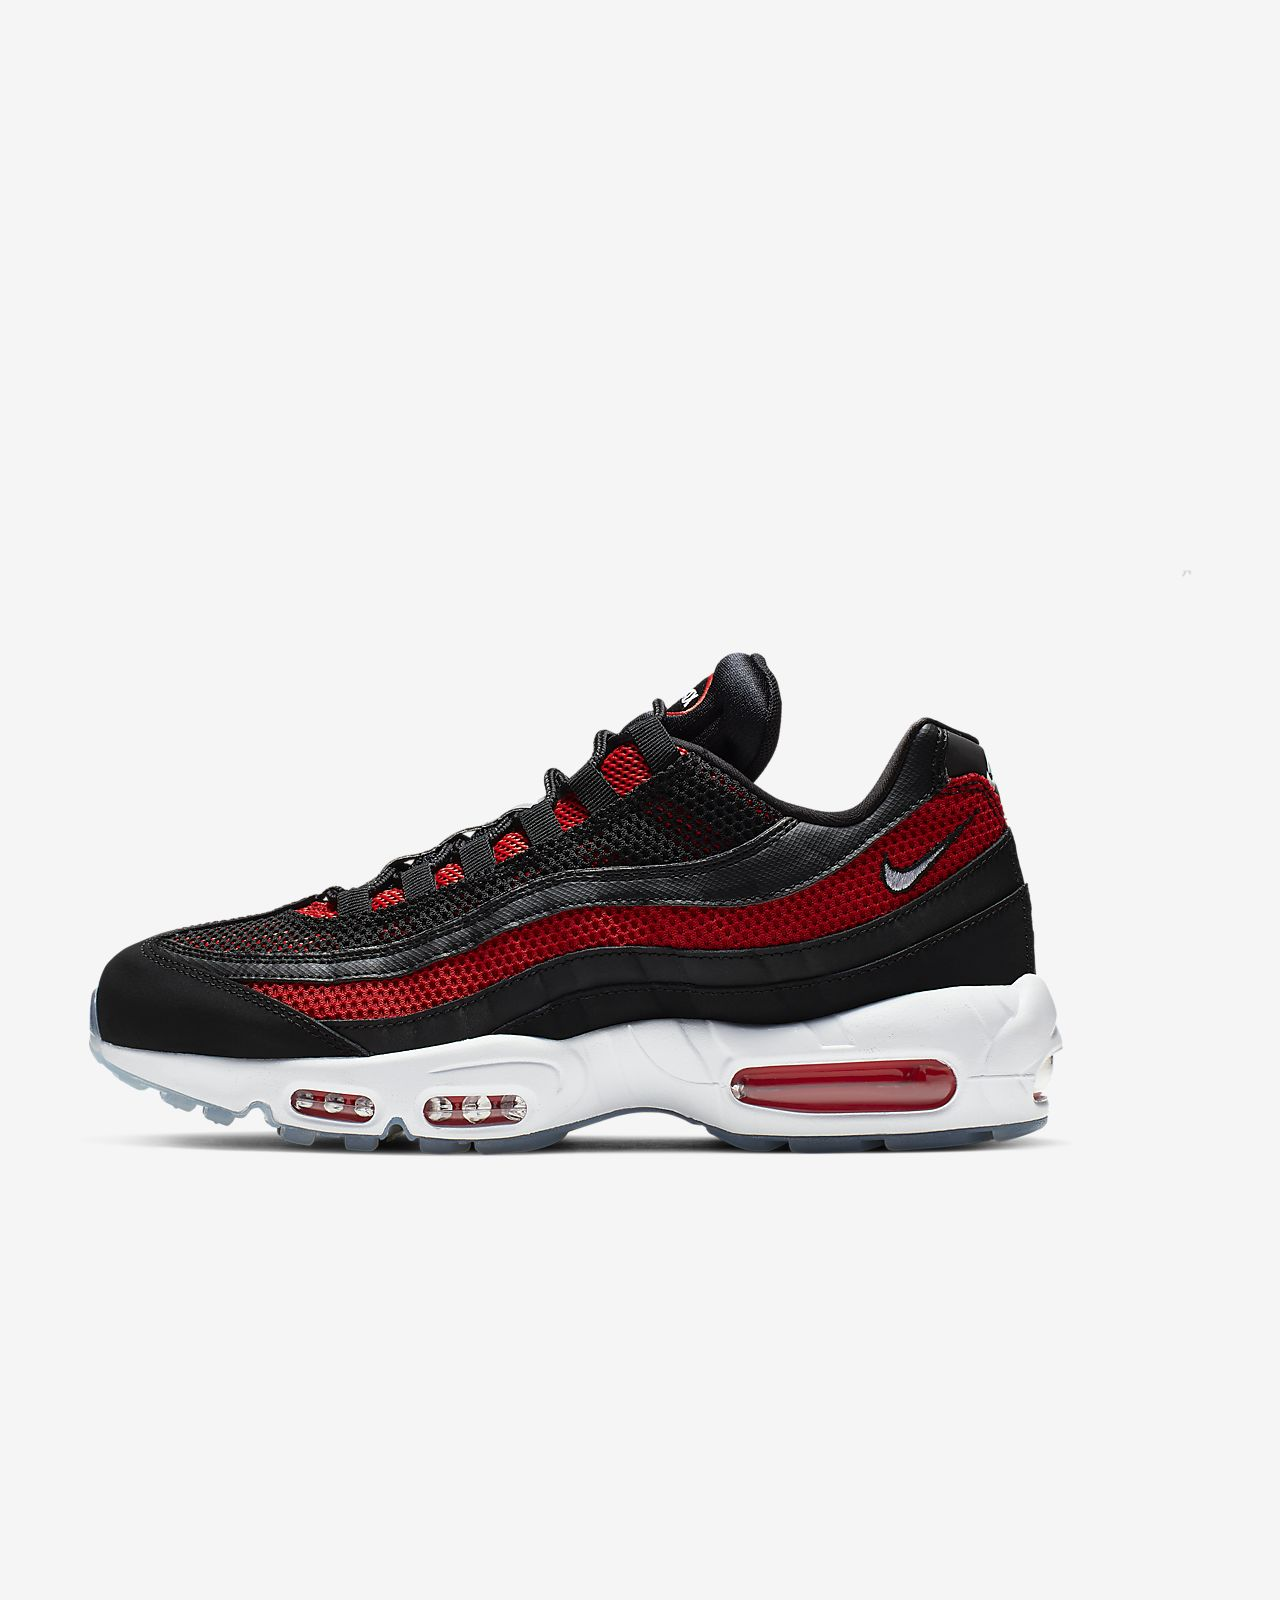 online retailer a5cc1 bc32a ... Nike Air Max 95 Essential Men s Shoe